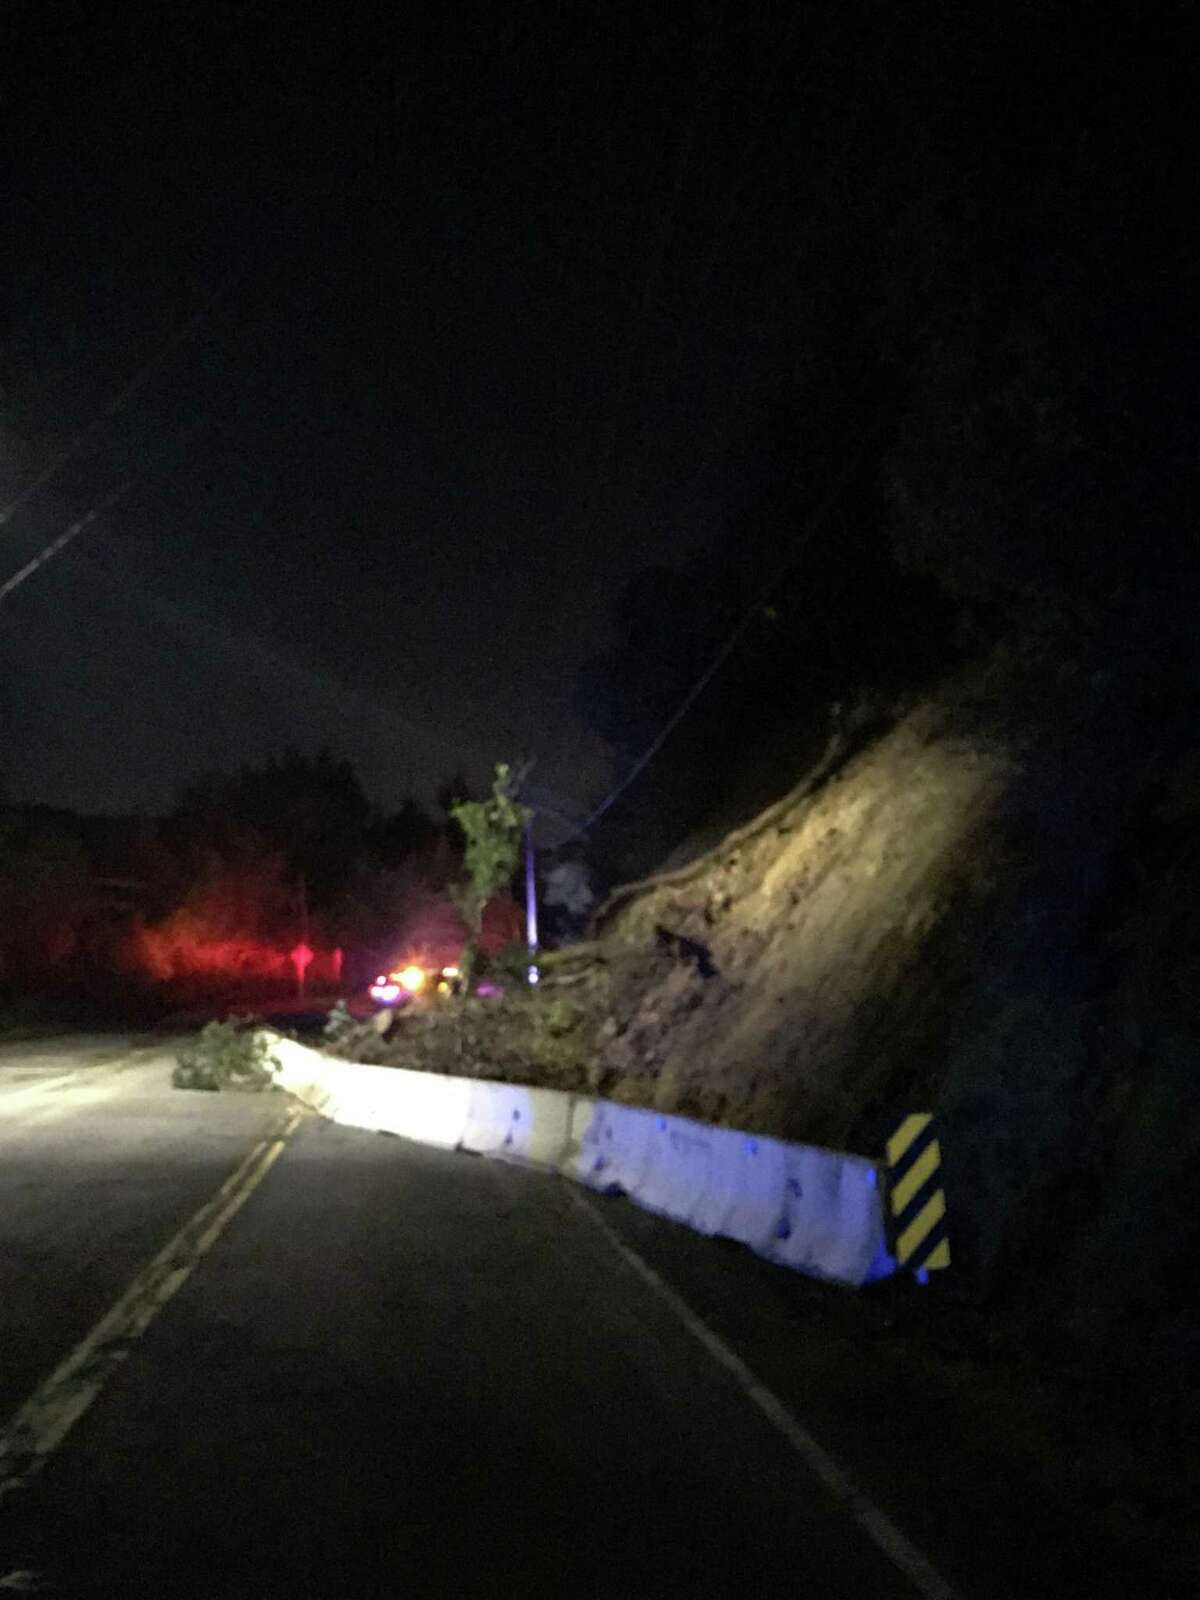 Sir Francis Drake Boulevard between Fairfax and Woodacre was closed Wednesday due to a landslide, officials said.